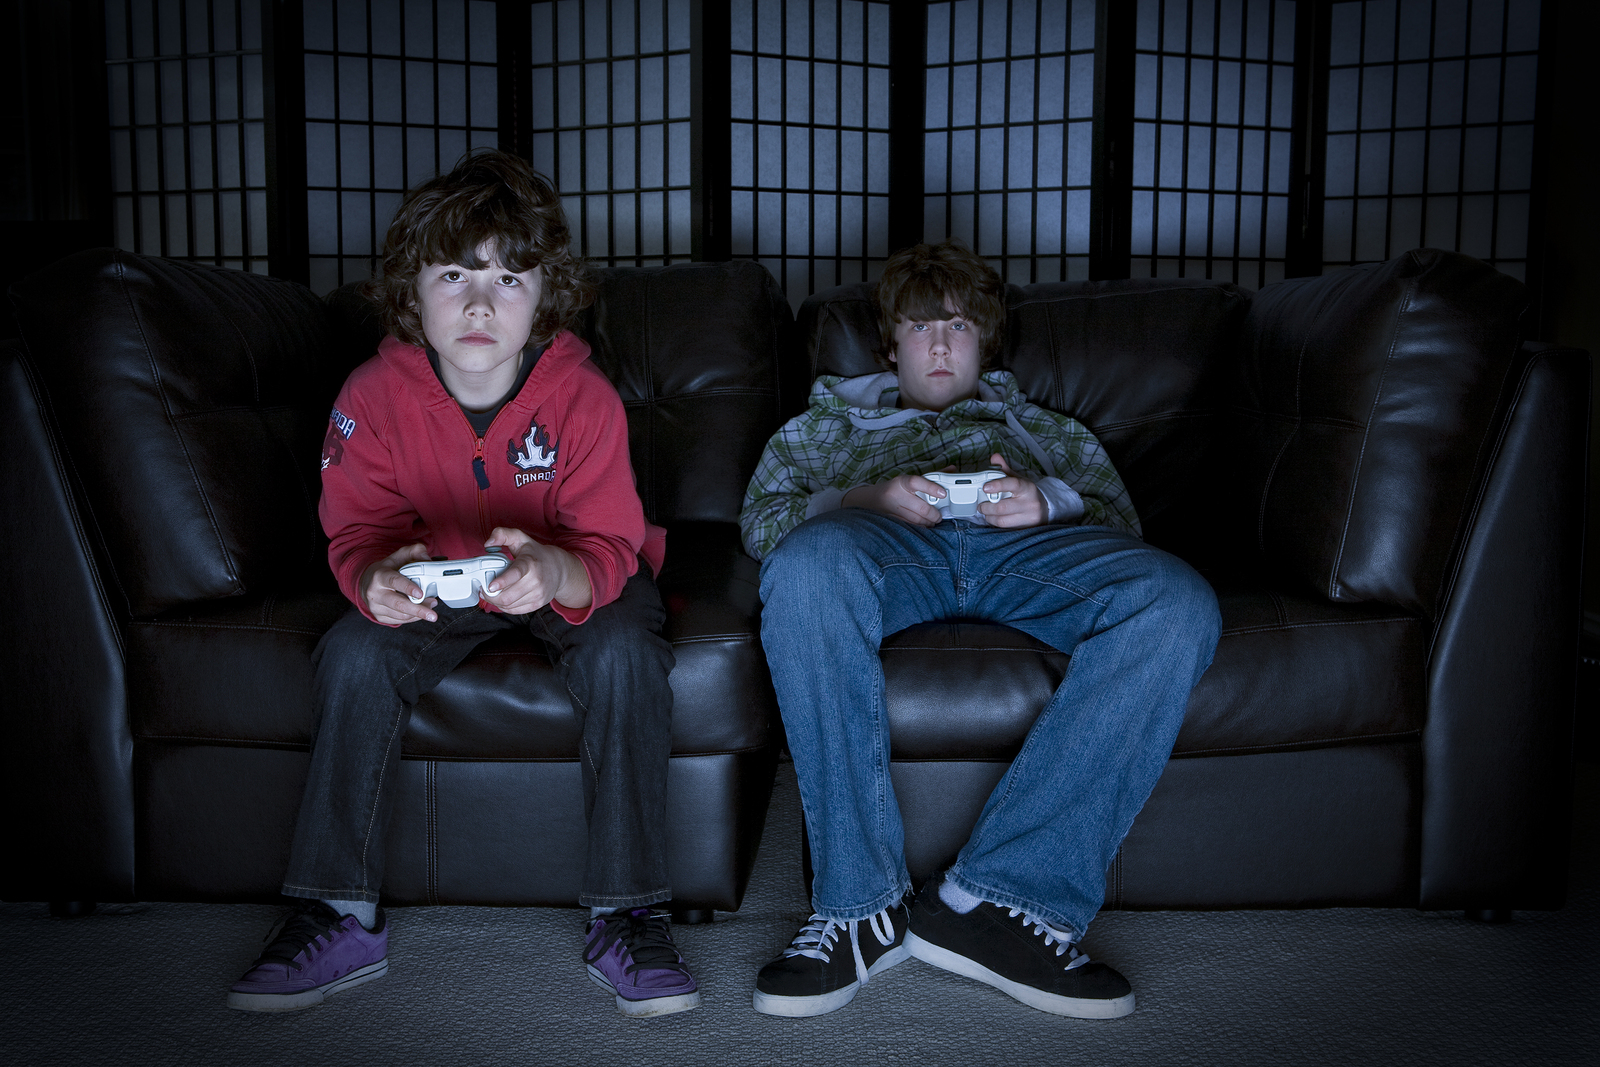 video-game-addiction-parent-tips-for-dealing-with